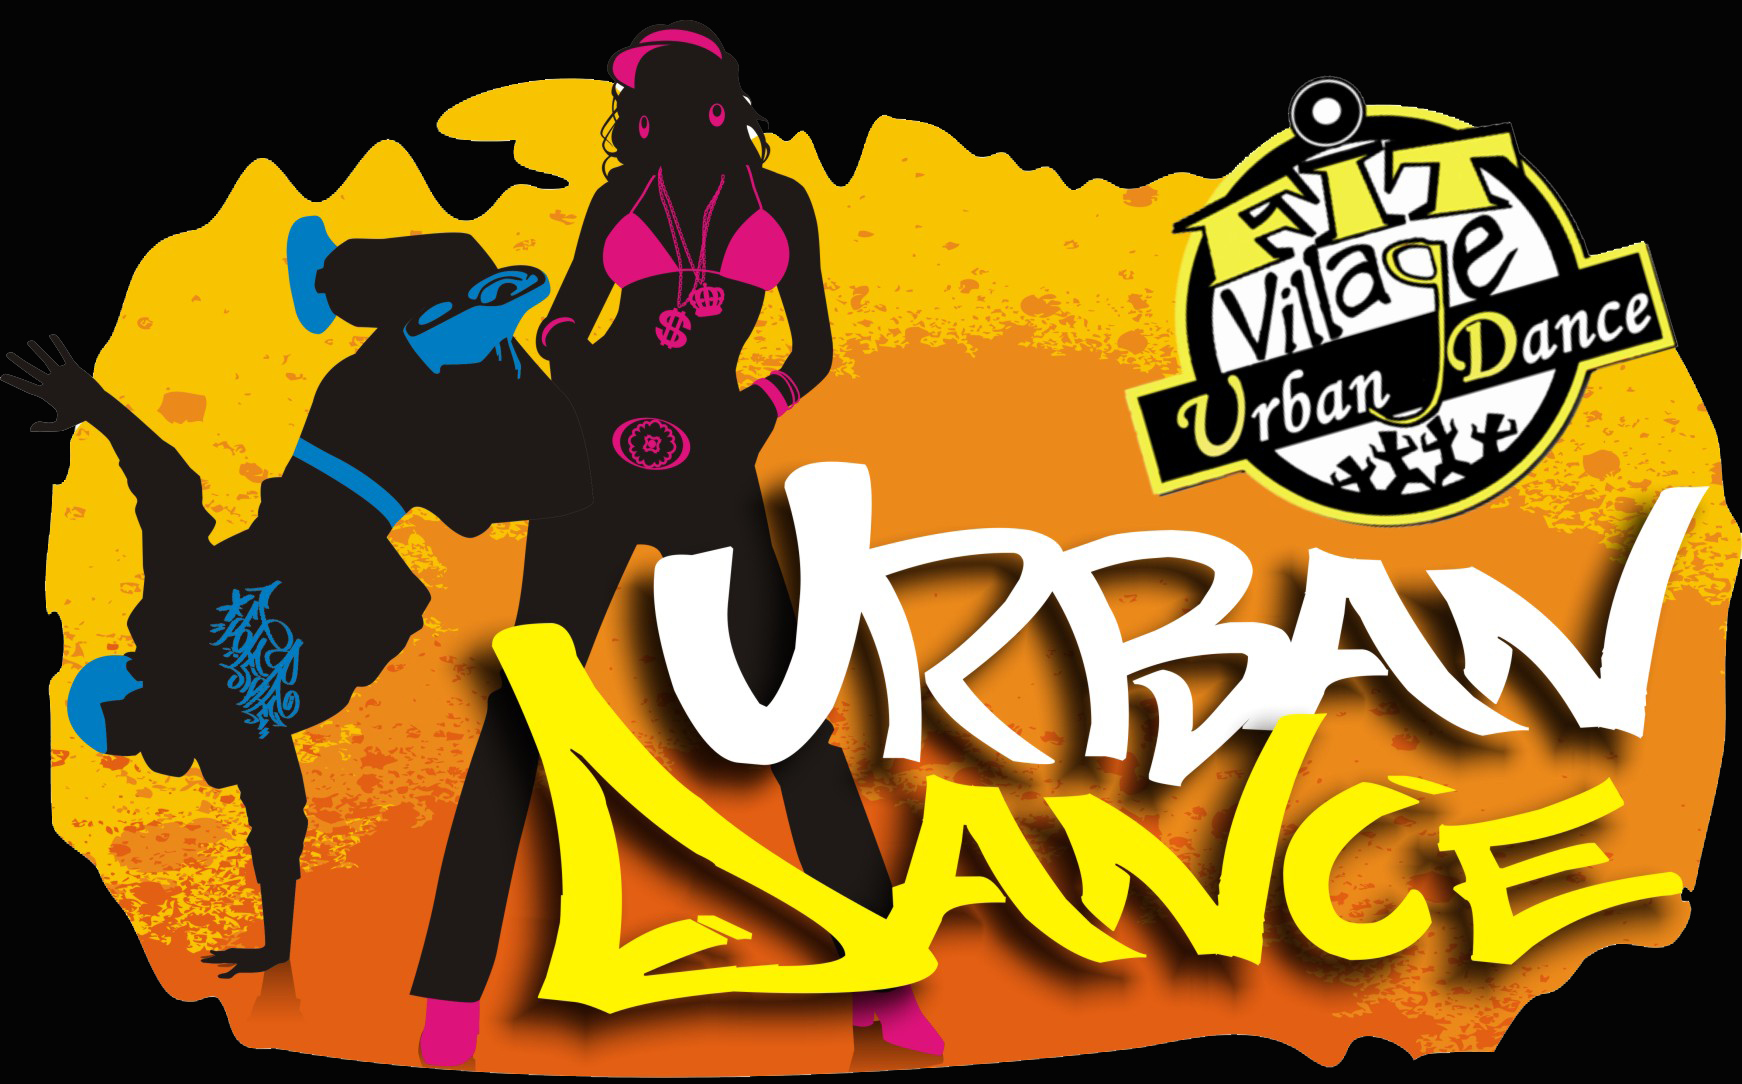 A.S.D. Fit Village Urban Dance